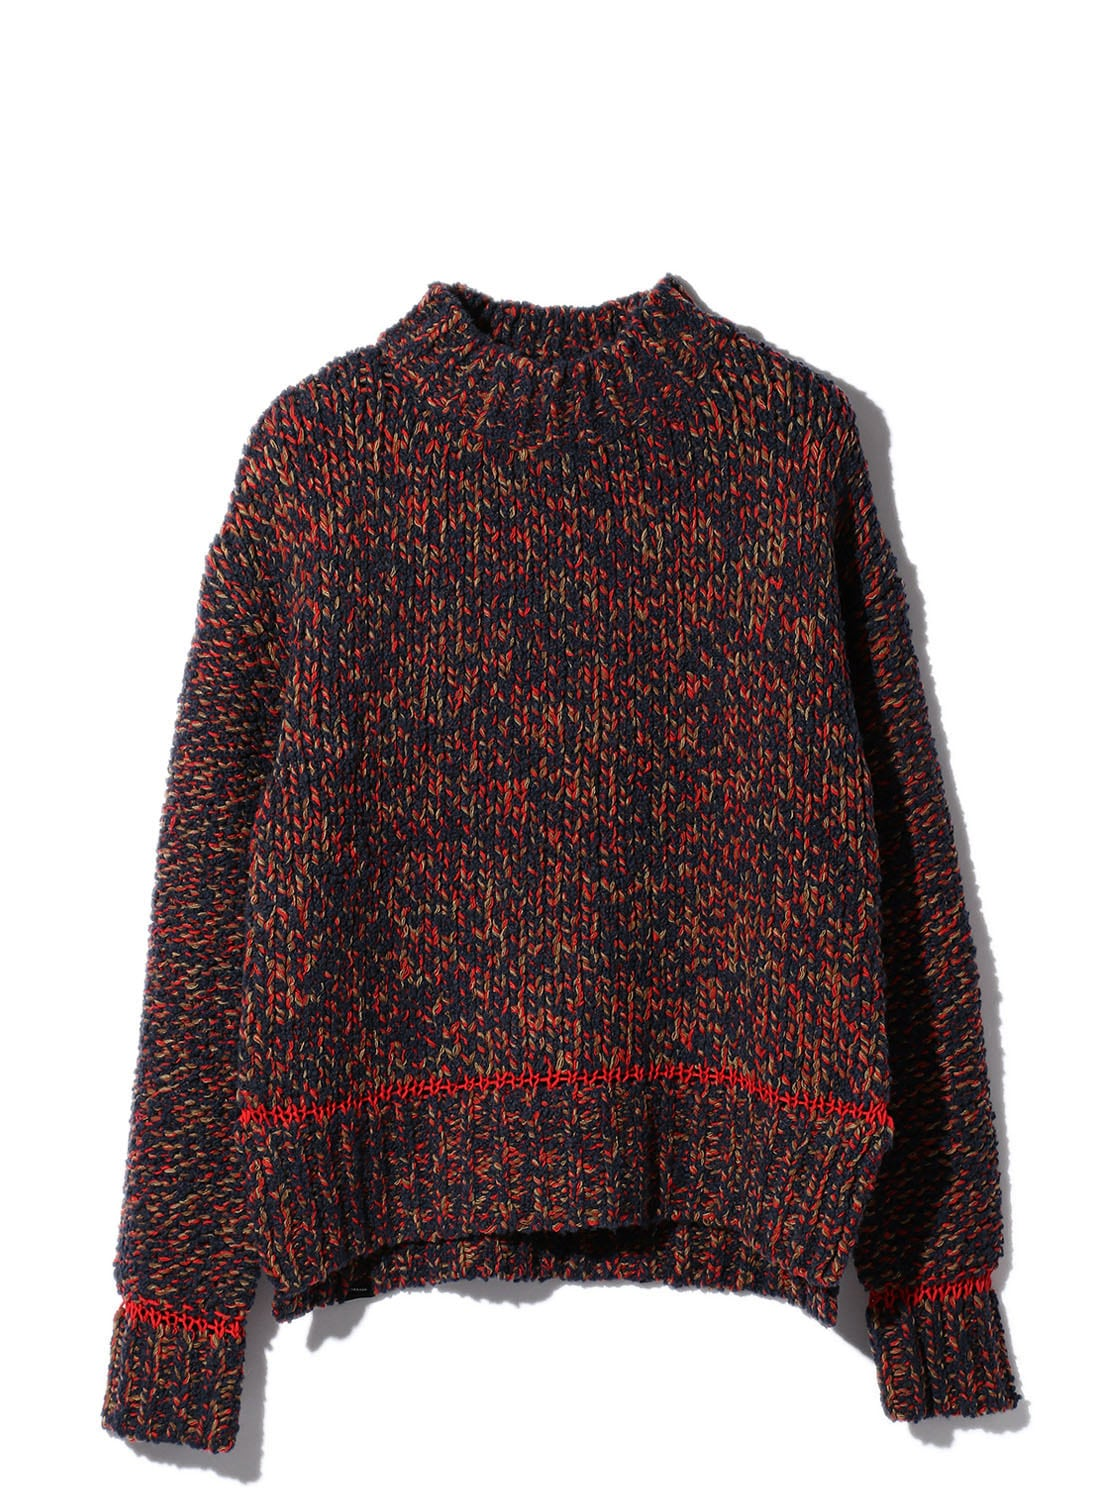 【日本限定】 MIX PACH KNIT